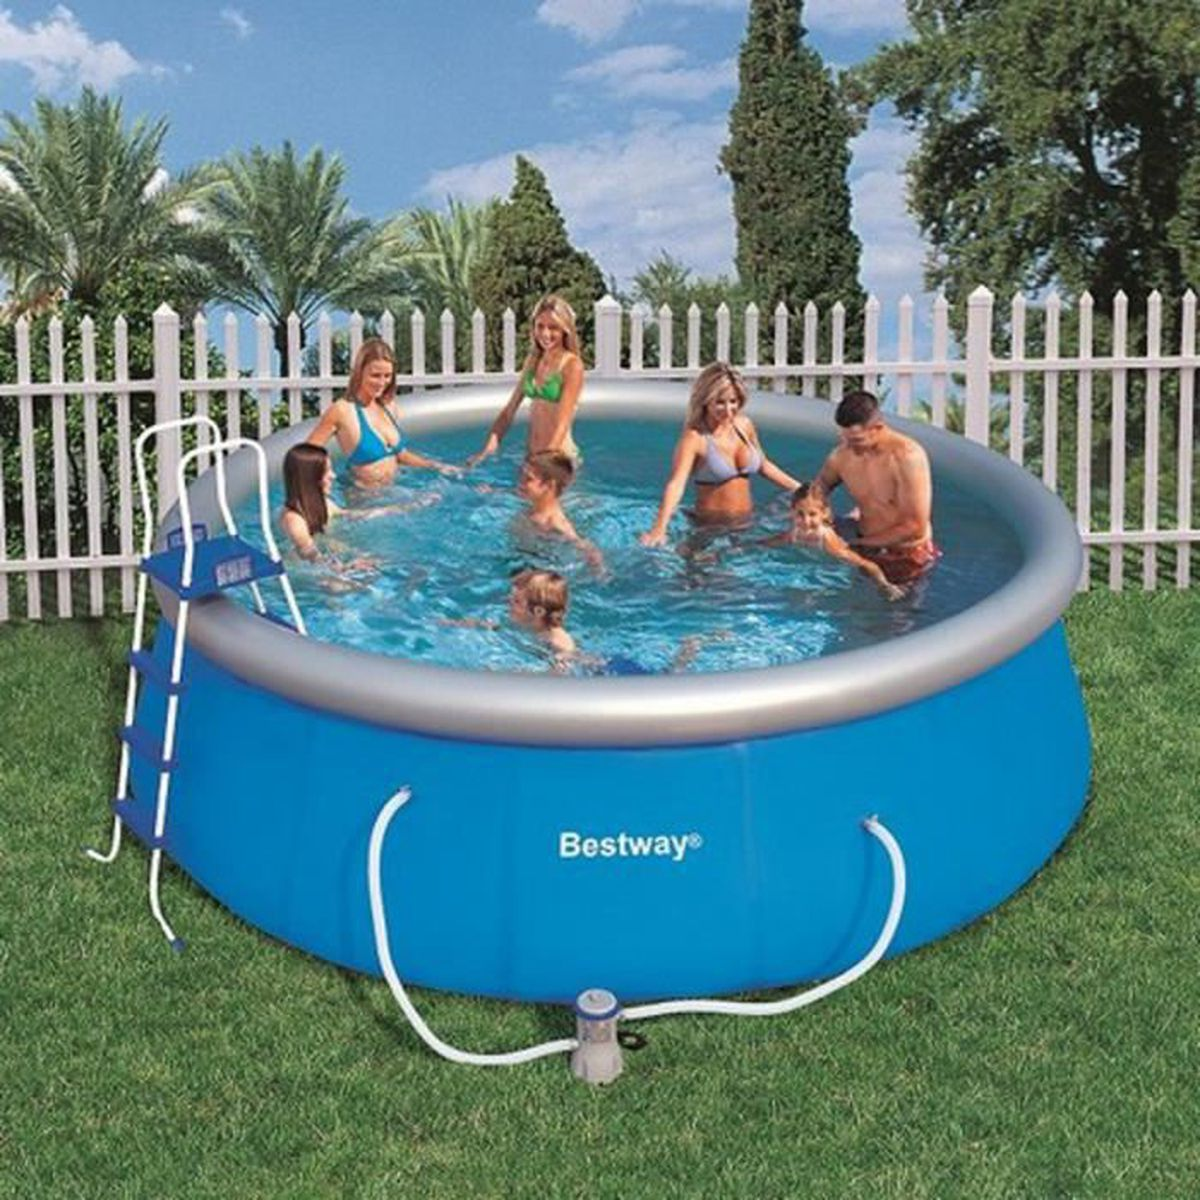 Piscine autoportante fast set 457 x 122 cm bestway achat for Achat piscine autoportante